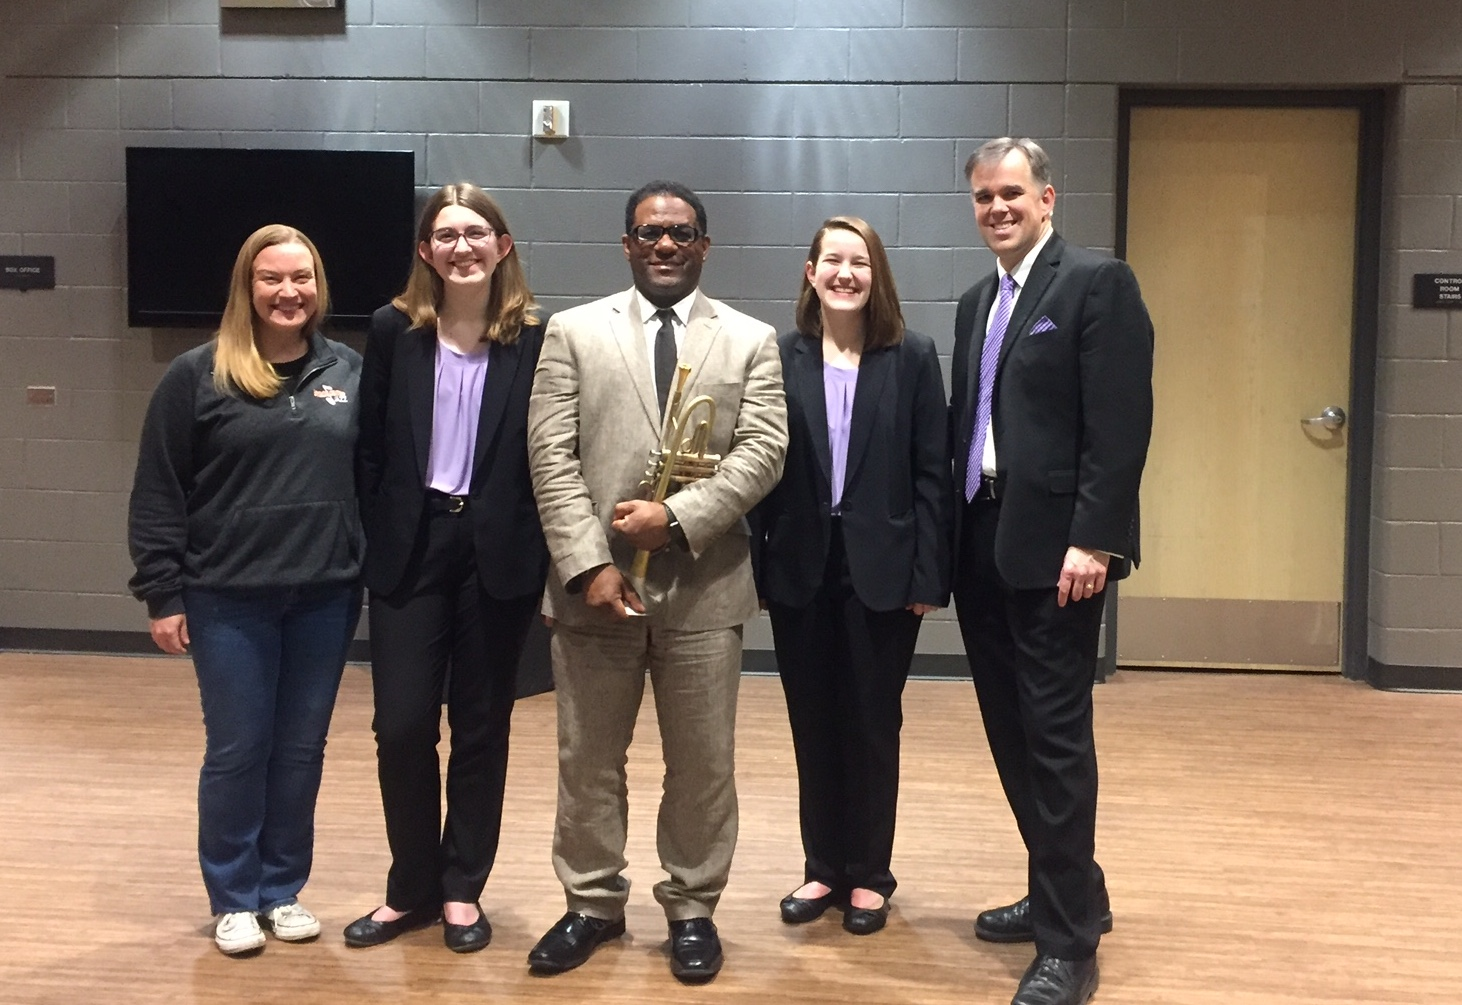 Marcus Printup is photographed with students and staff following a collage concert on March 11, 2020.